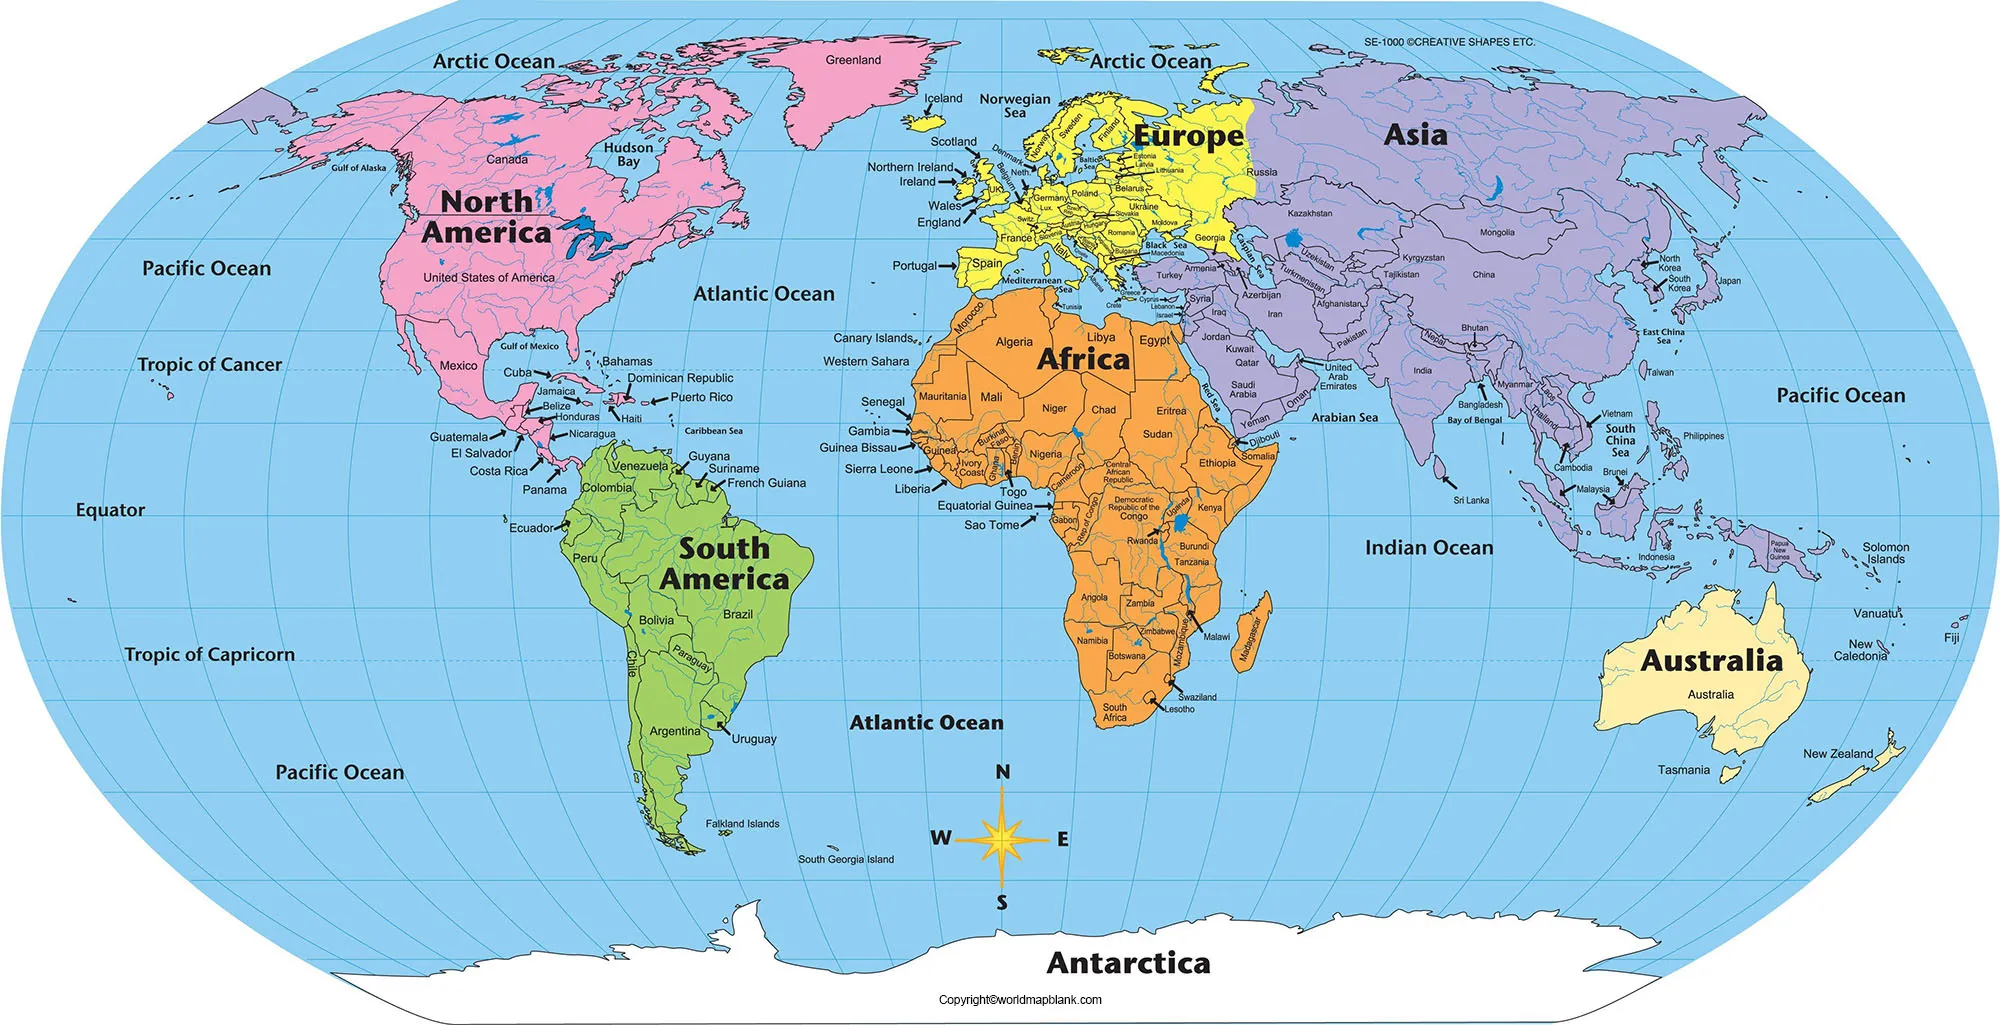 Labeled Map of World with Oceans